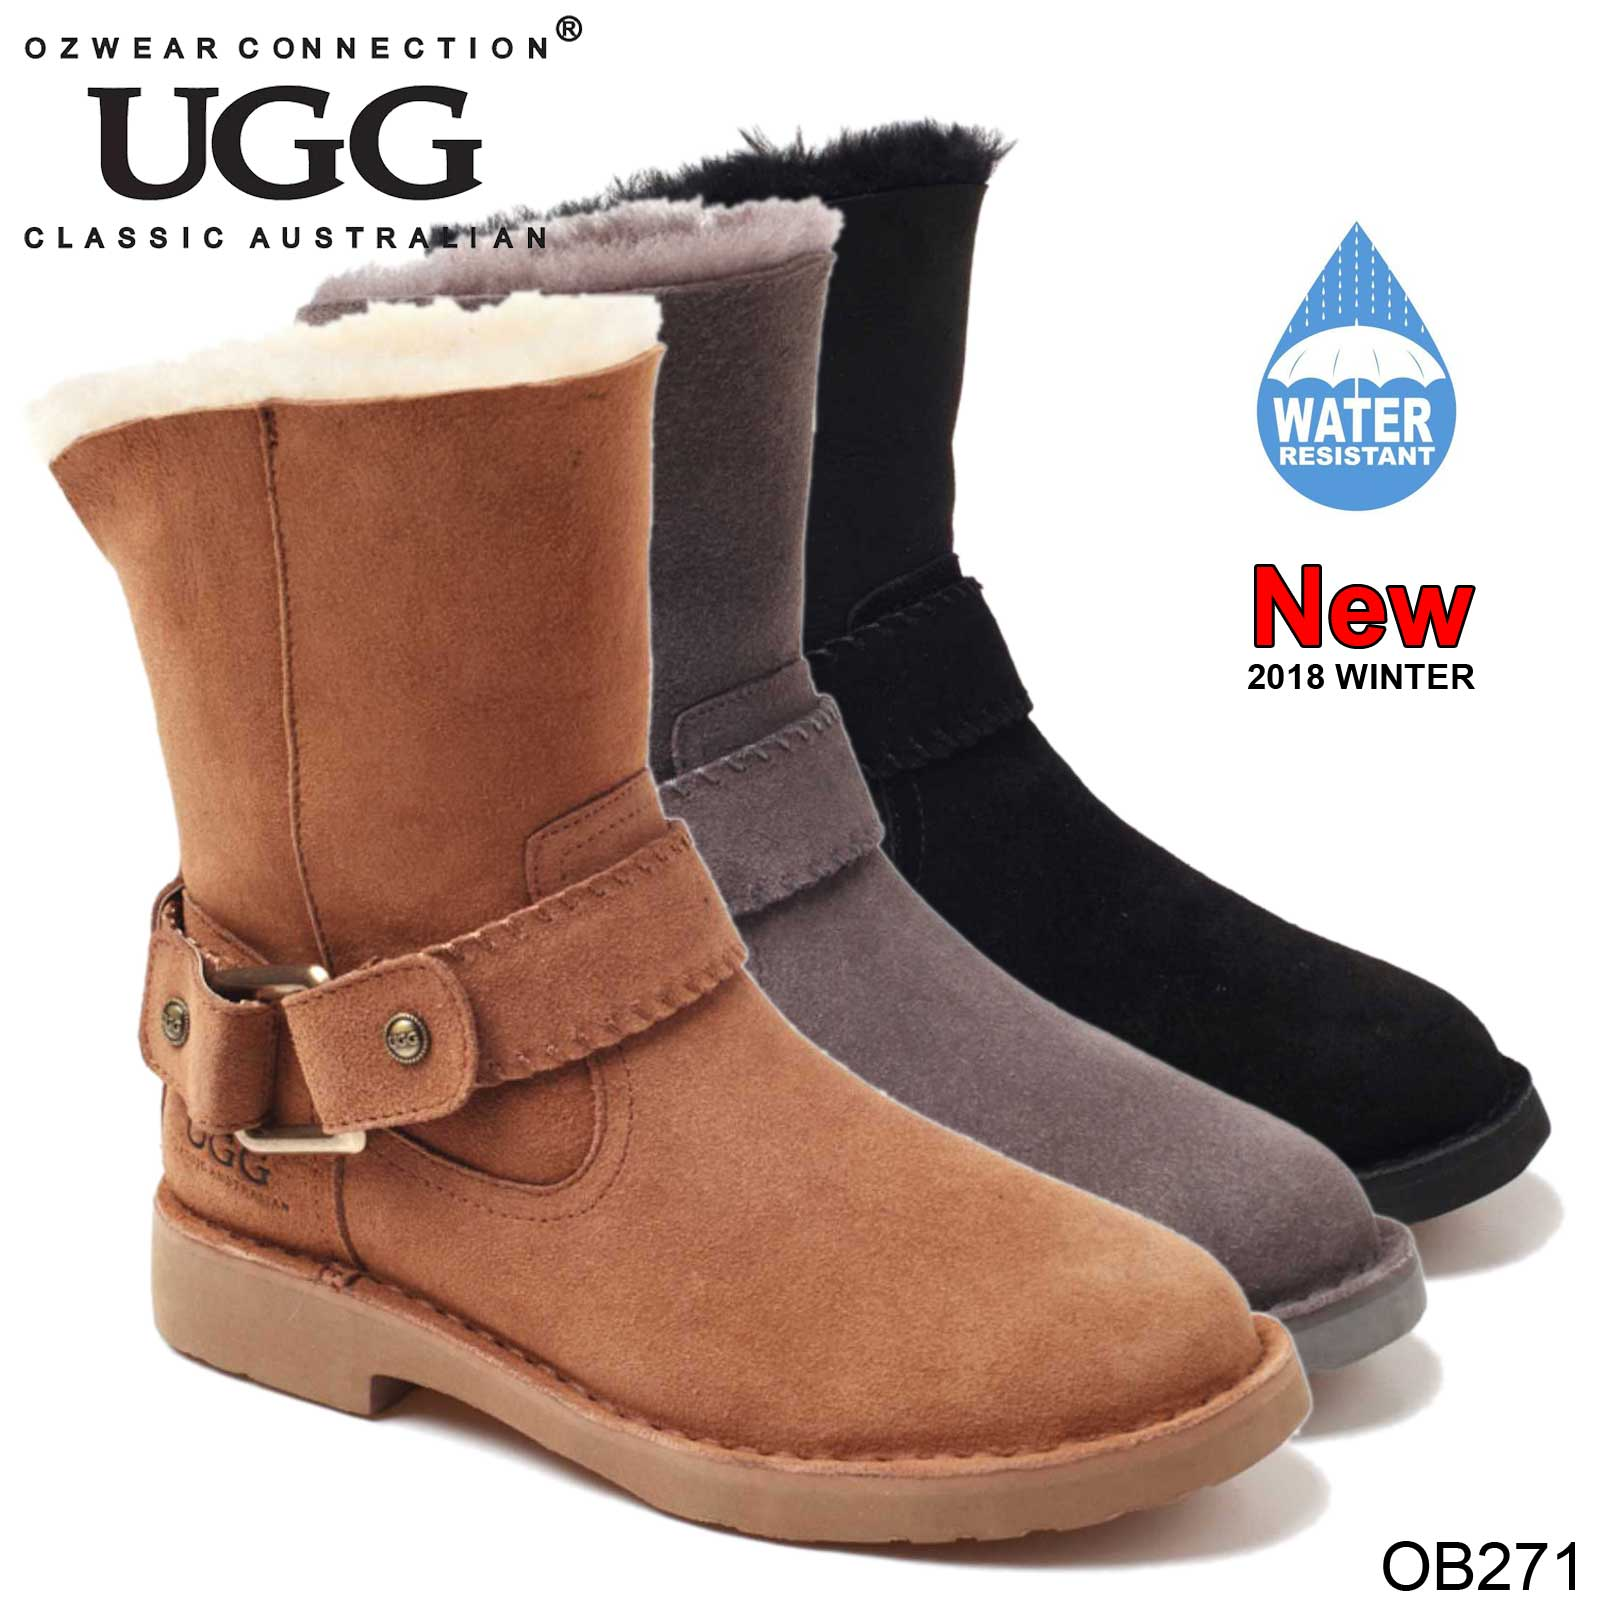 db1123cc437 Details about UGG OZWEAR Ladies LARA BUCKLE STRAP BOOTS SUEDE SHEEPSKIN  WATER RESISTANT OB271